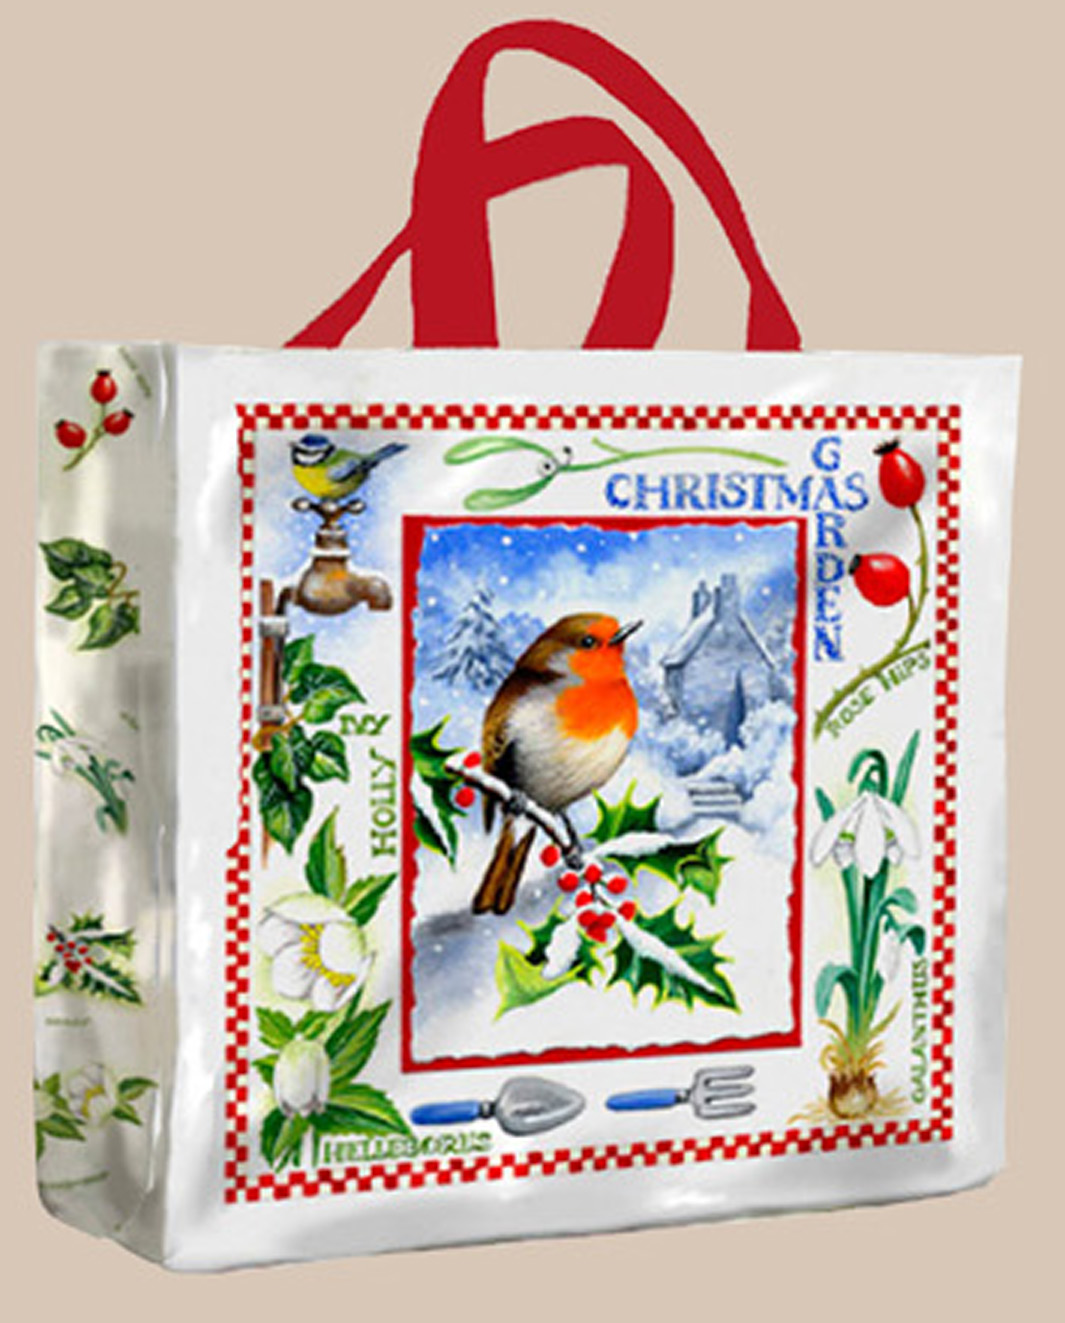 Christmas Garden PVC Gusset Bag Medium